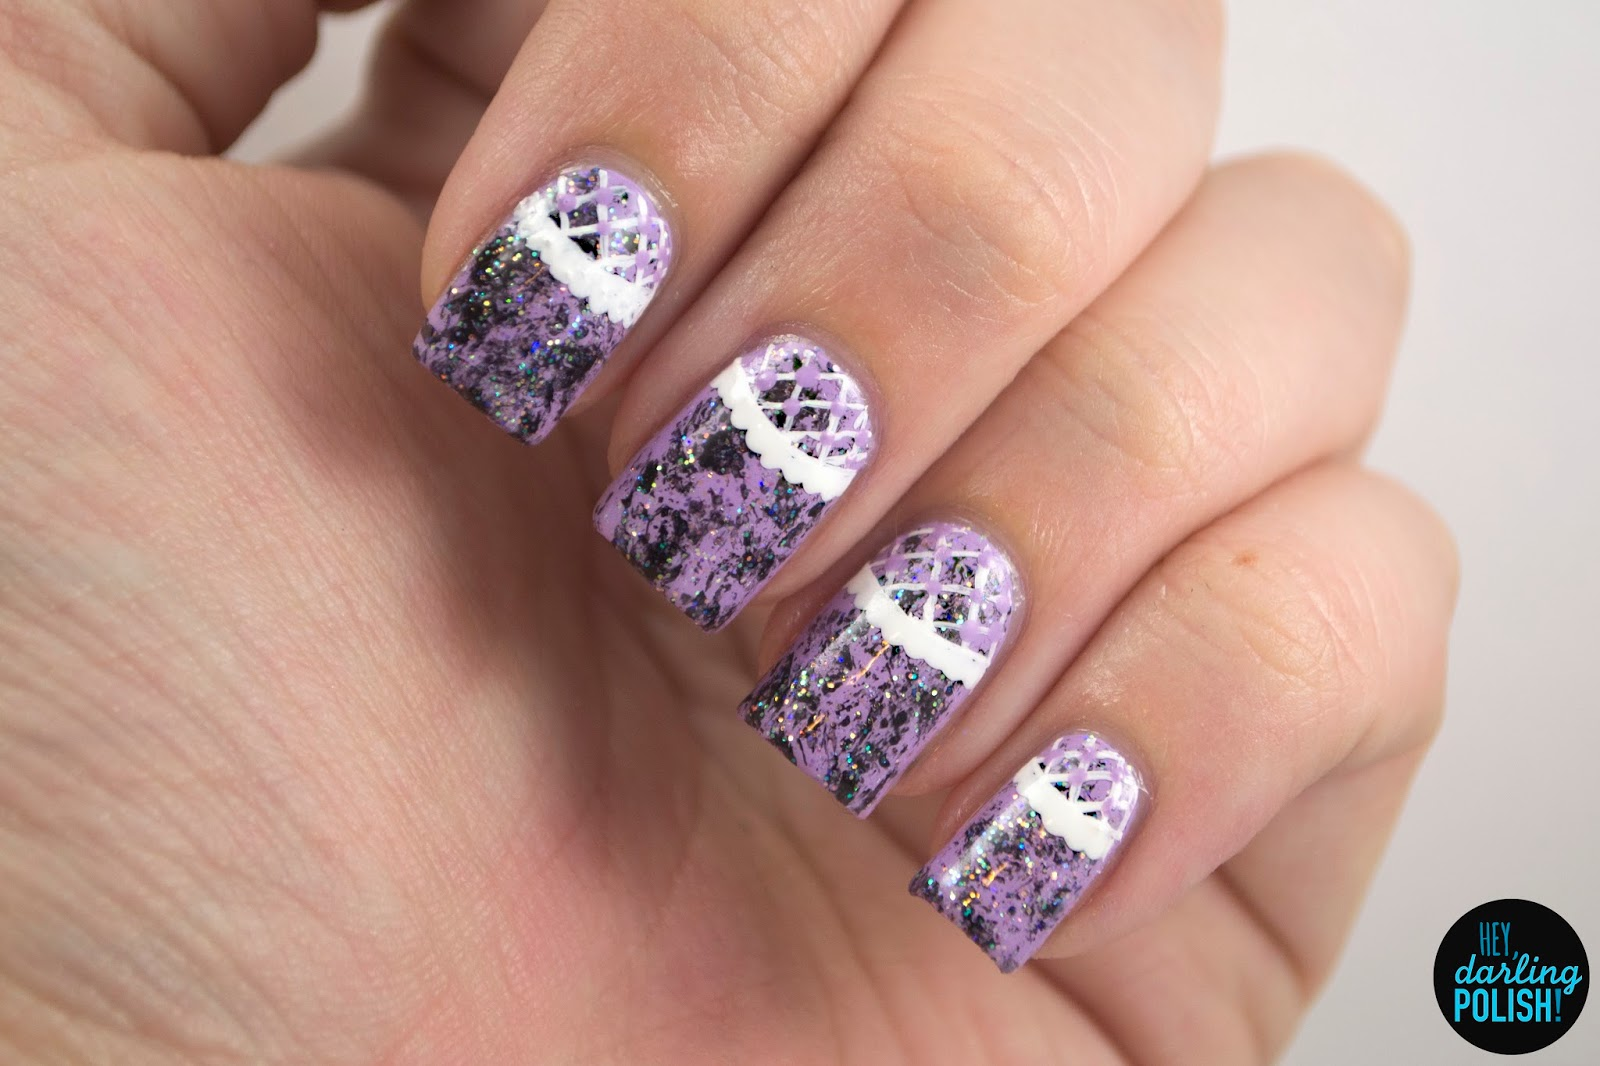 nails, nail art, nail polish, polish, lilac, white, lace, black, sparkle, golden oldie thursdays, hey darling polish